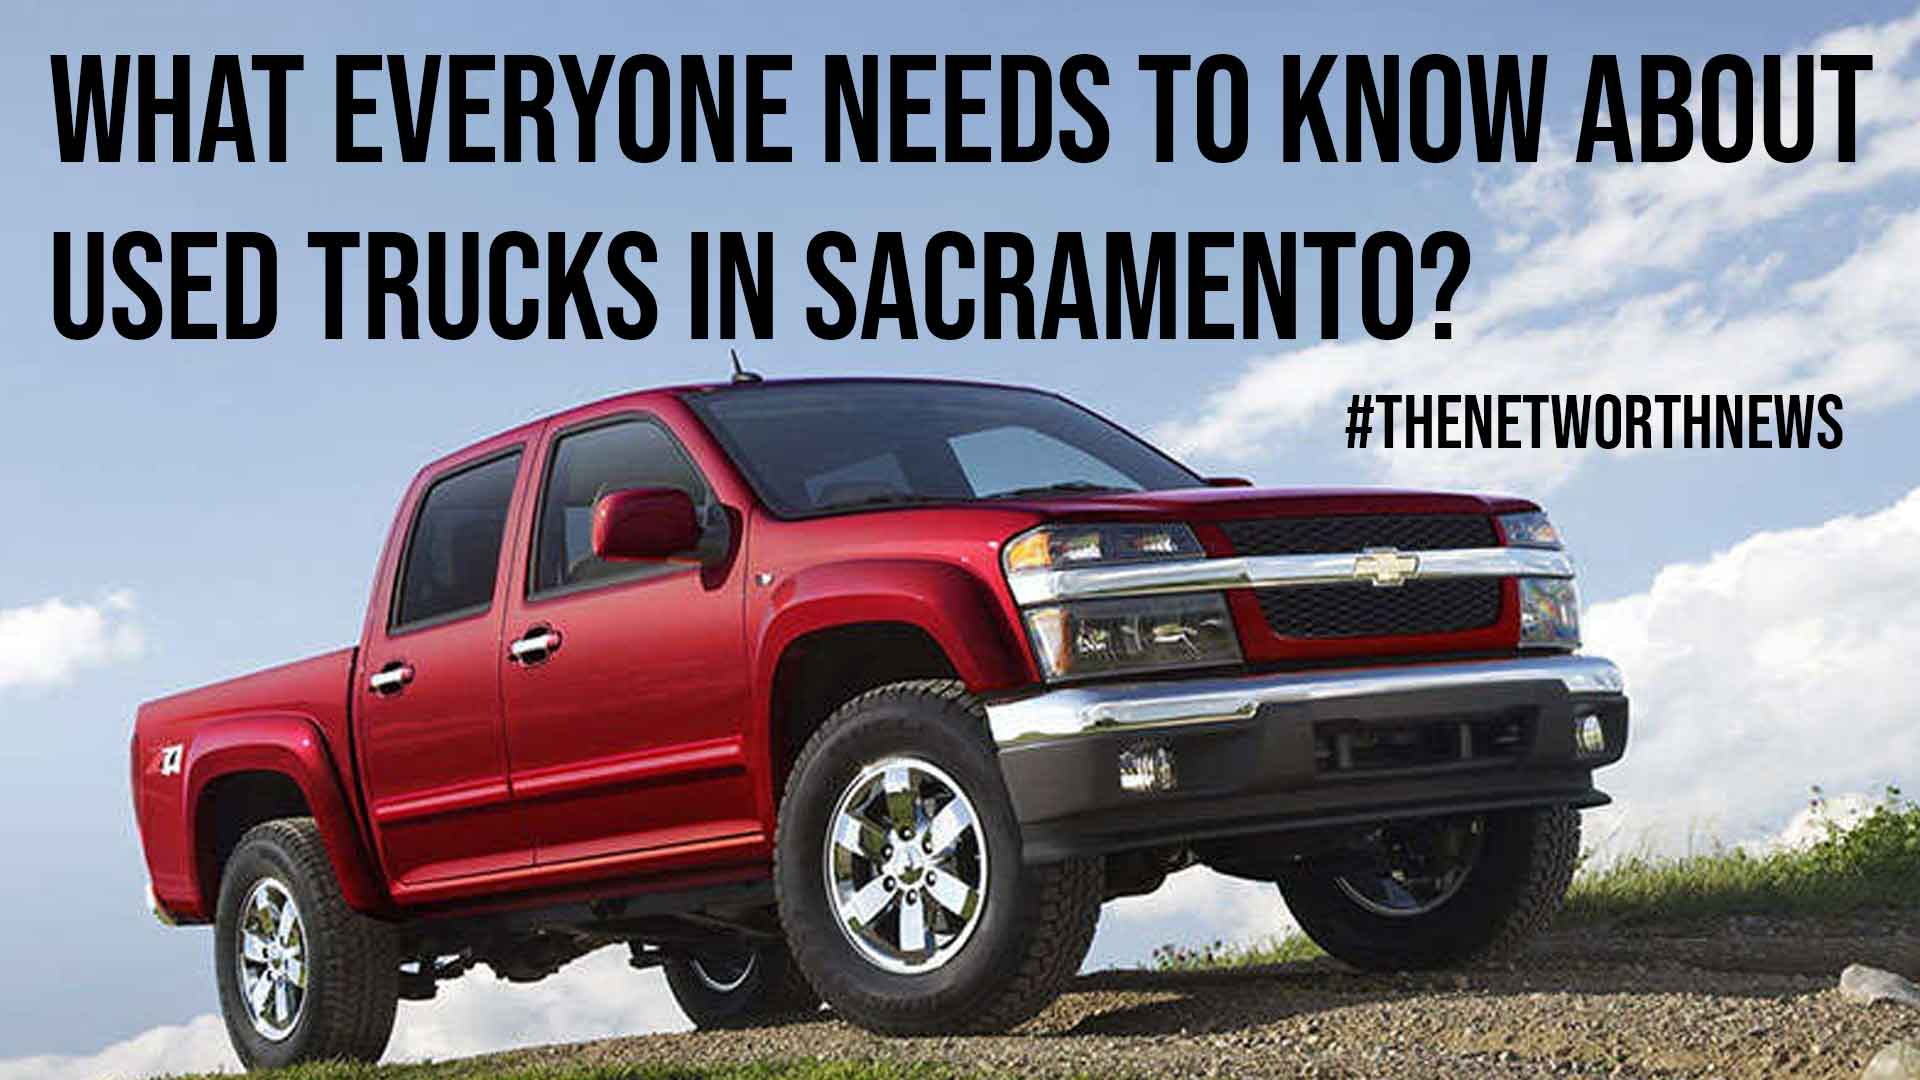 What Everyone Needs to Know About Used Trucks in Sacramento